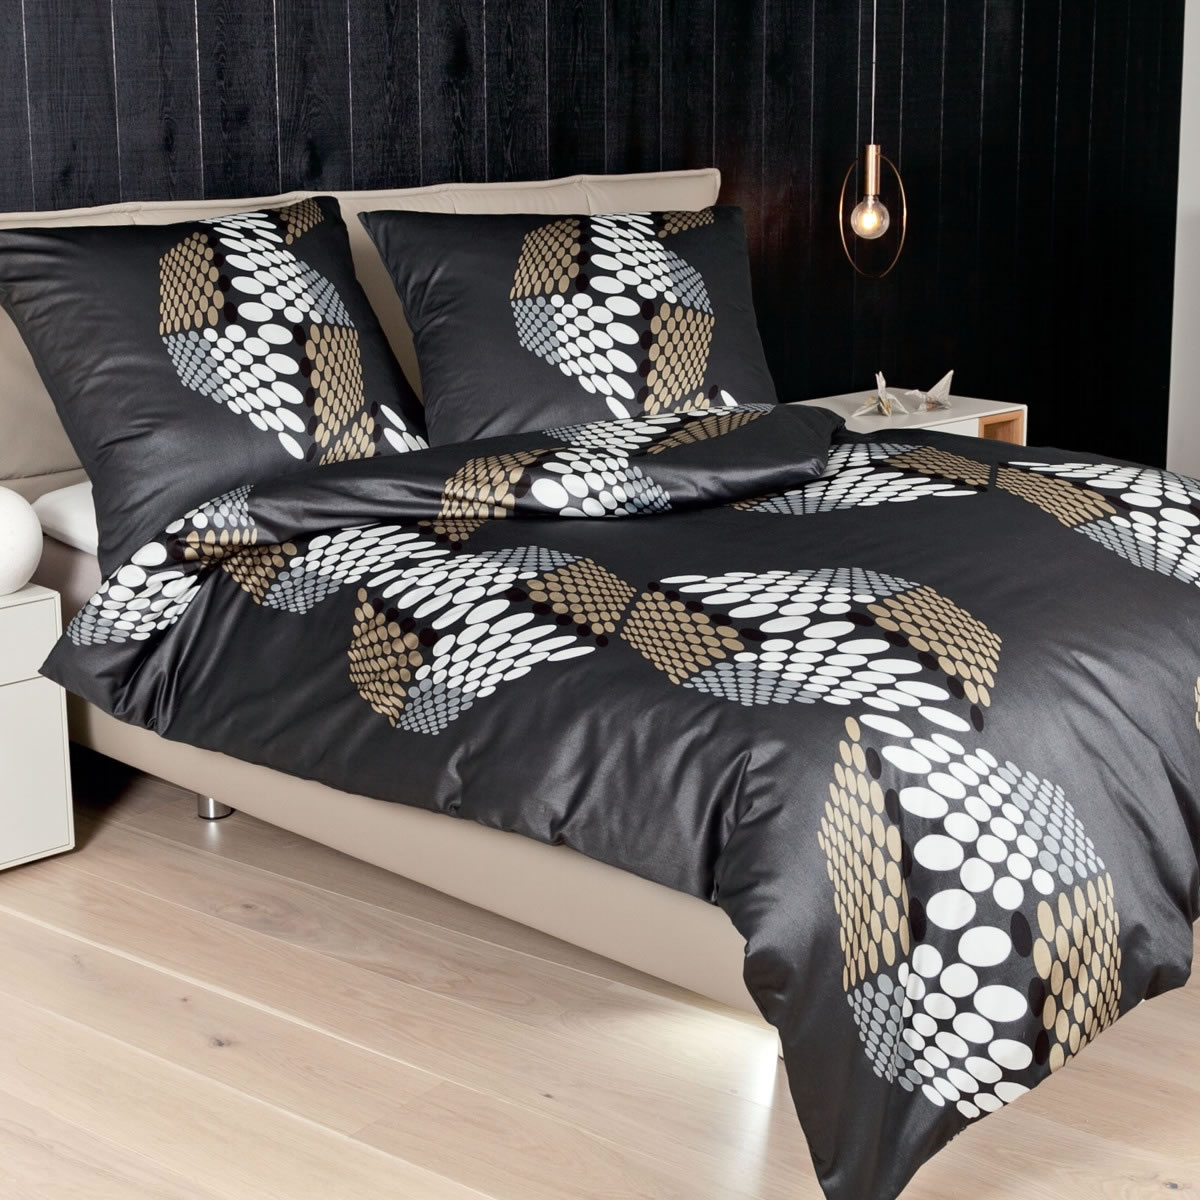 janine mako satin bettw sche messina design 4778 07 braun grau sand nougat ebay. Black Bedroom Furniture Sets. Home Design Ideas